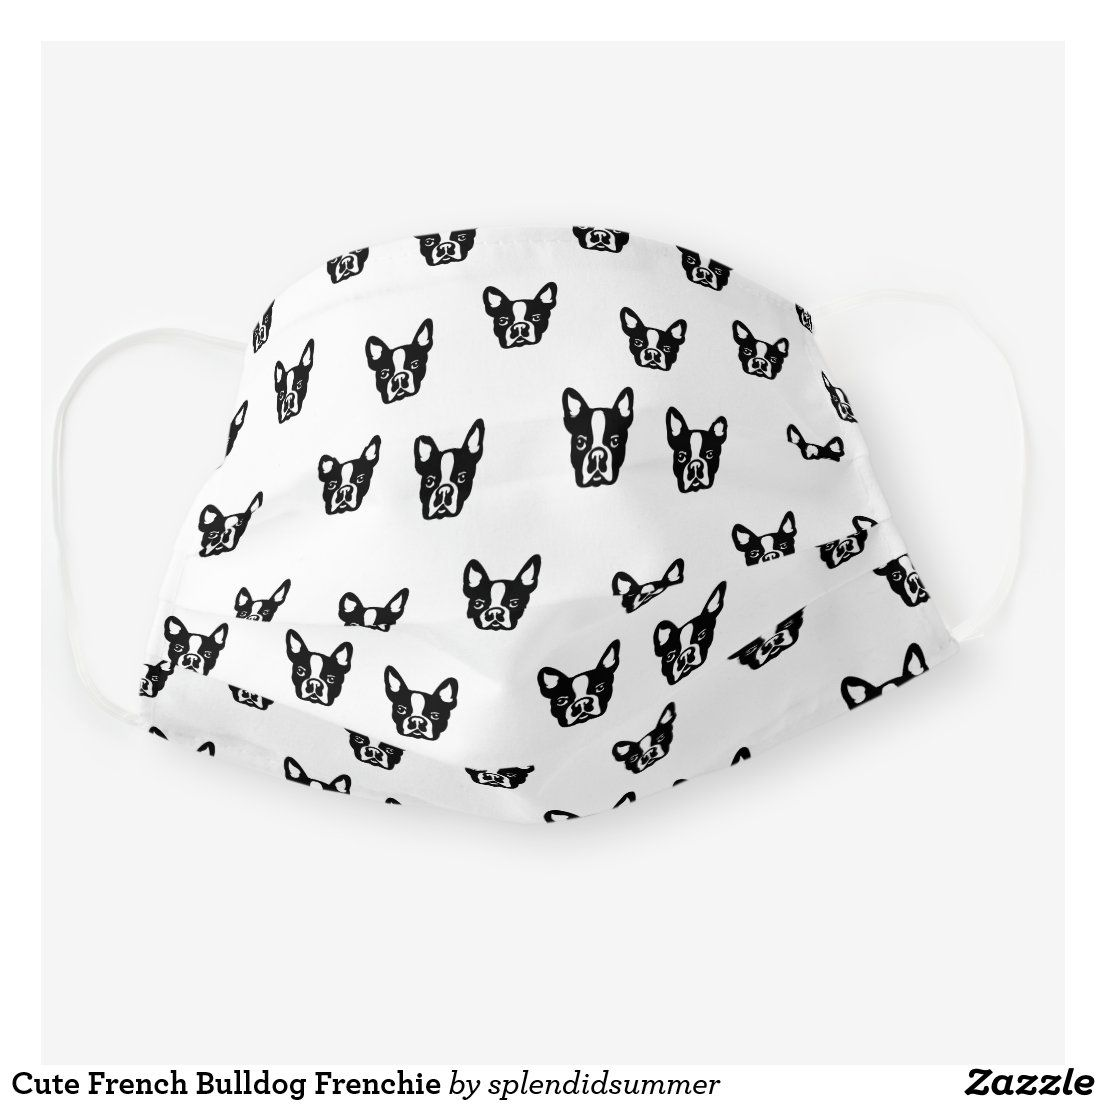 Cute French Bulldog Frenchie Cloth Face Mask Zazzle Com In 2020 Cute French Bulldog Frenchie French Bulldog